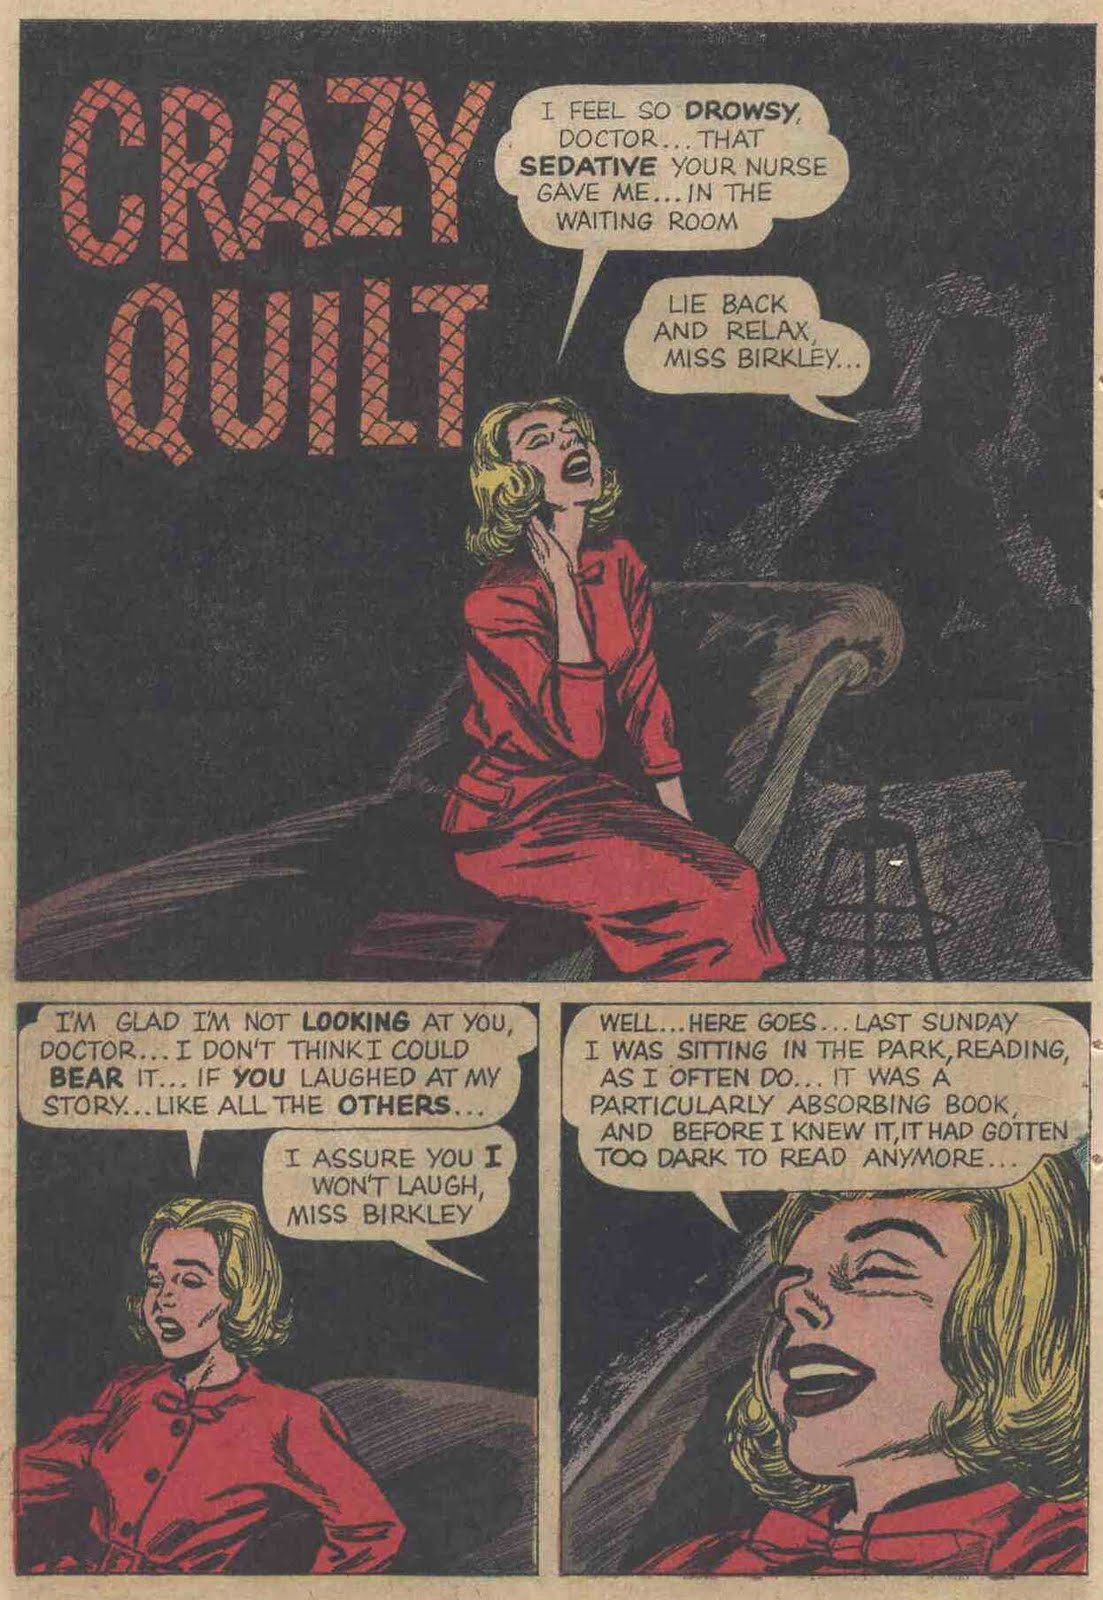 Tales-from-the-Tomb-1-Crazy-Quilt-p-1.jpg